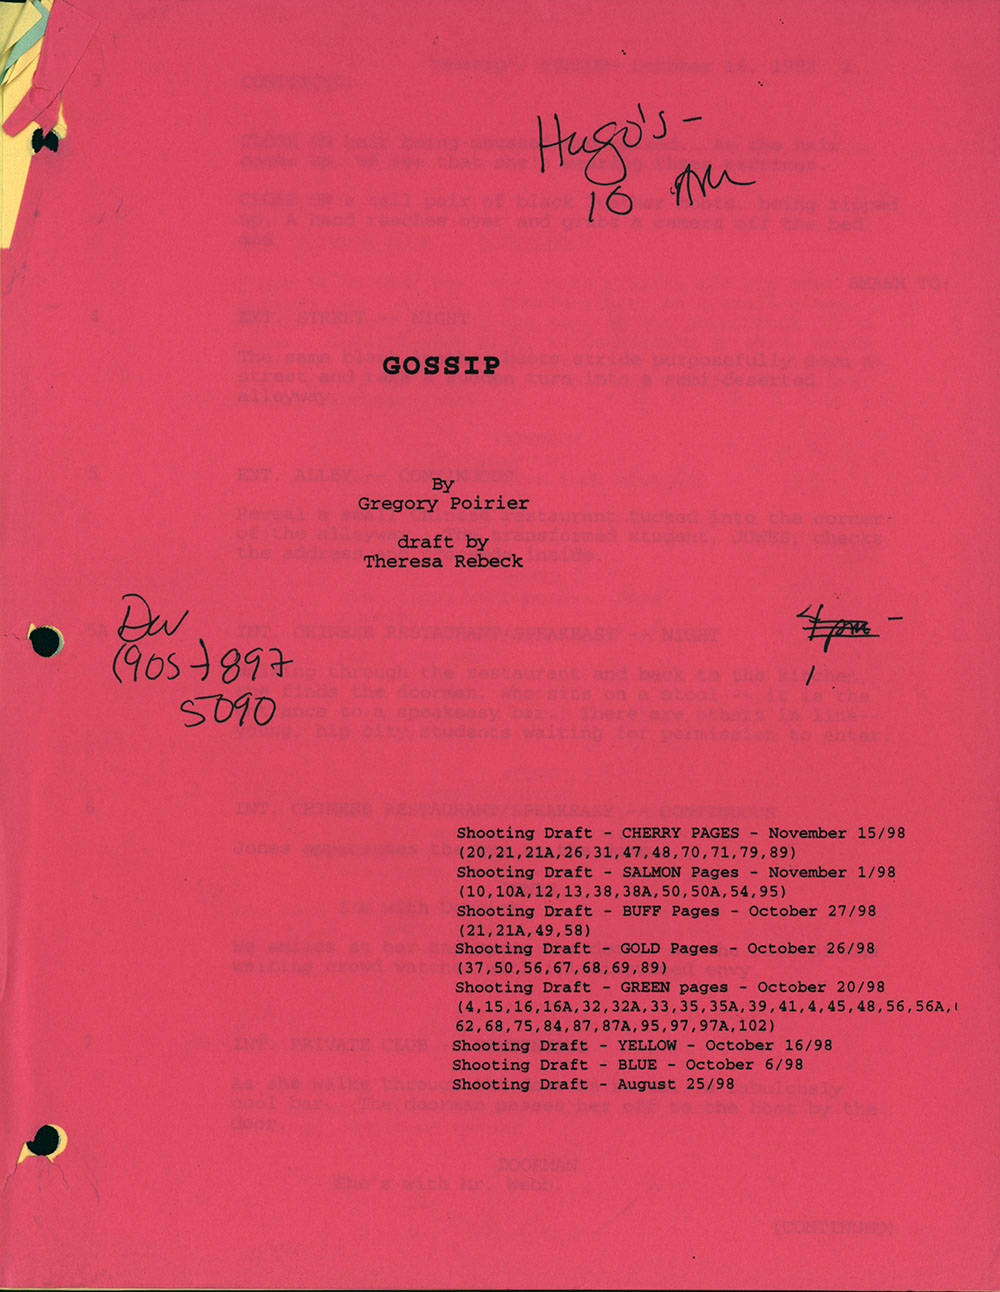 Shooting draft for Gossip (draft by Theresa Rebeck), August-November, 1998